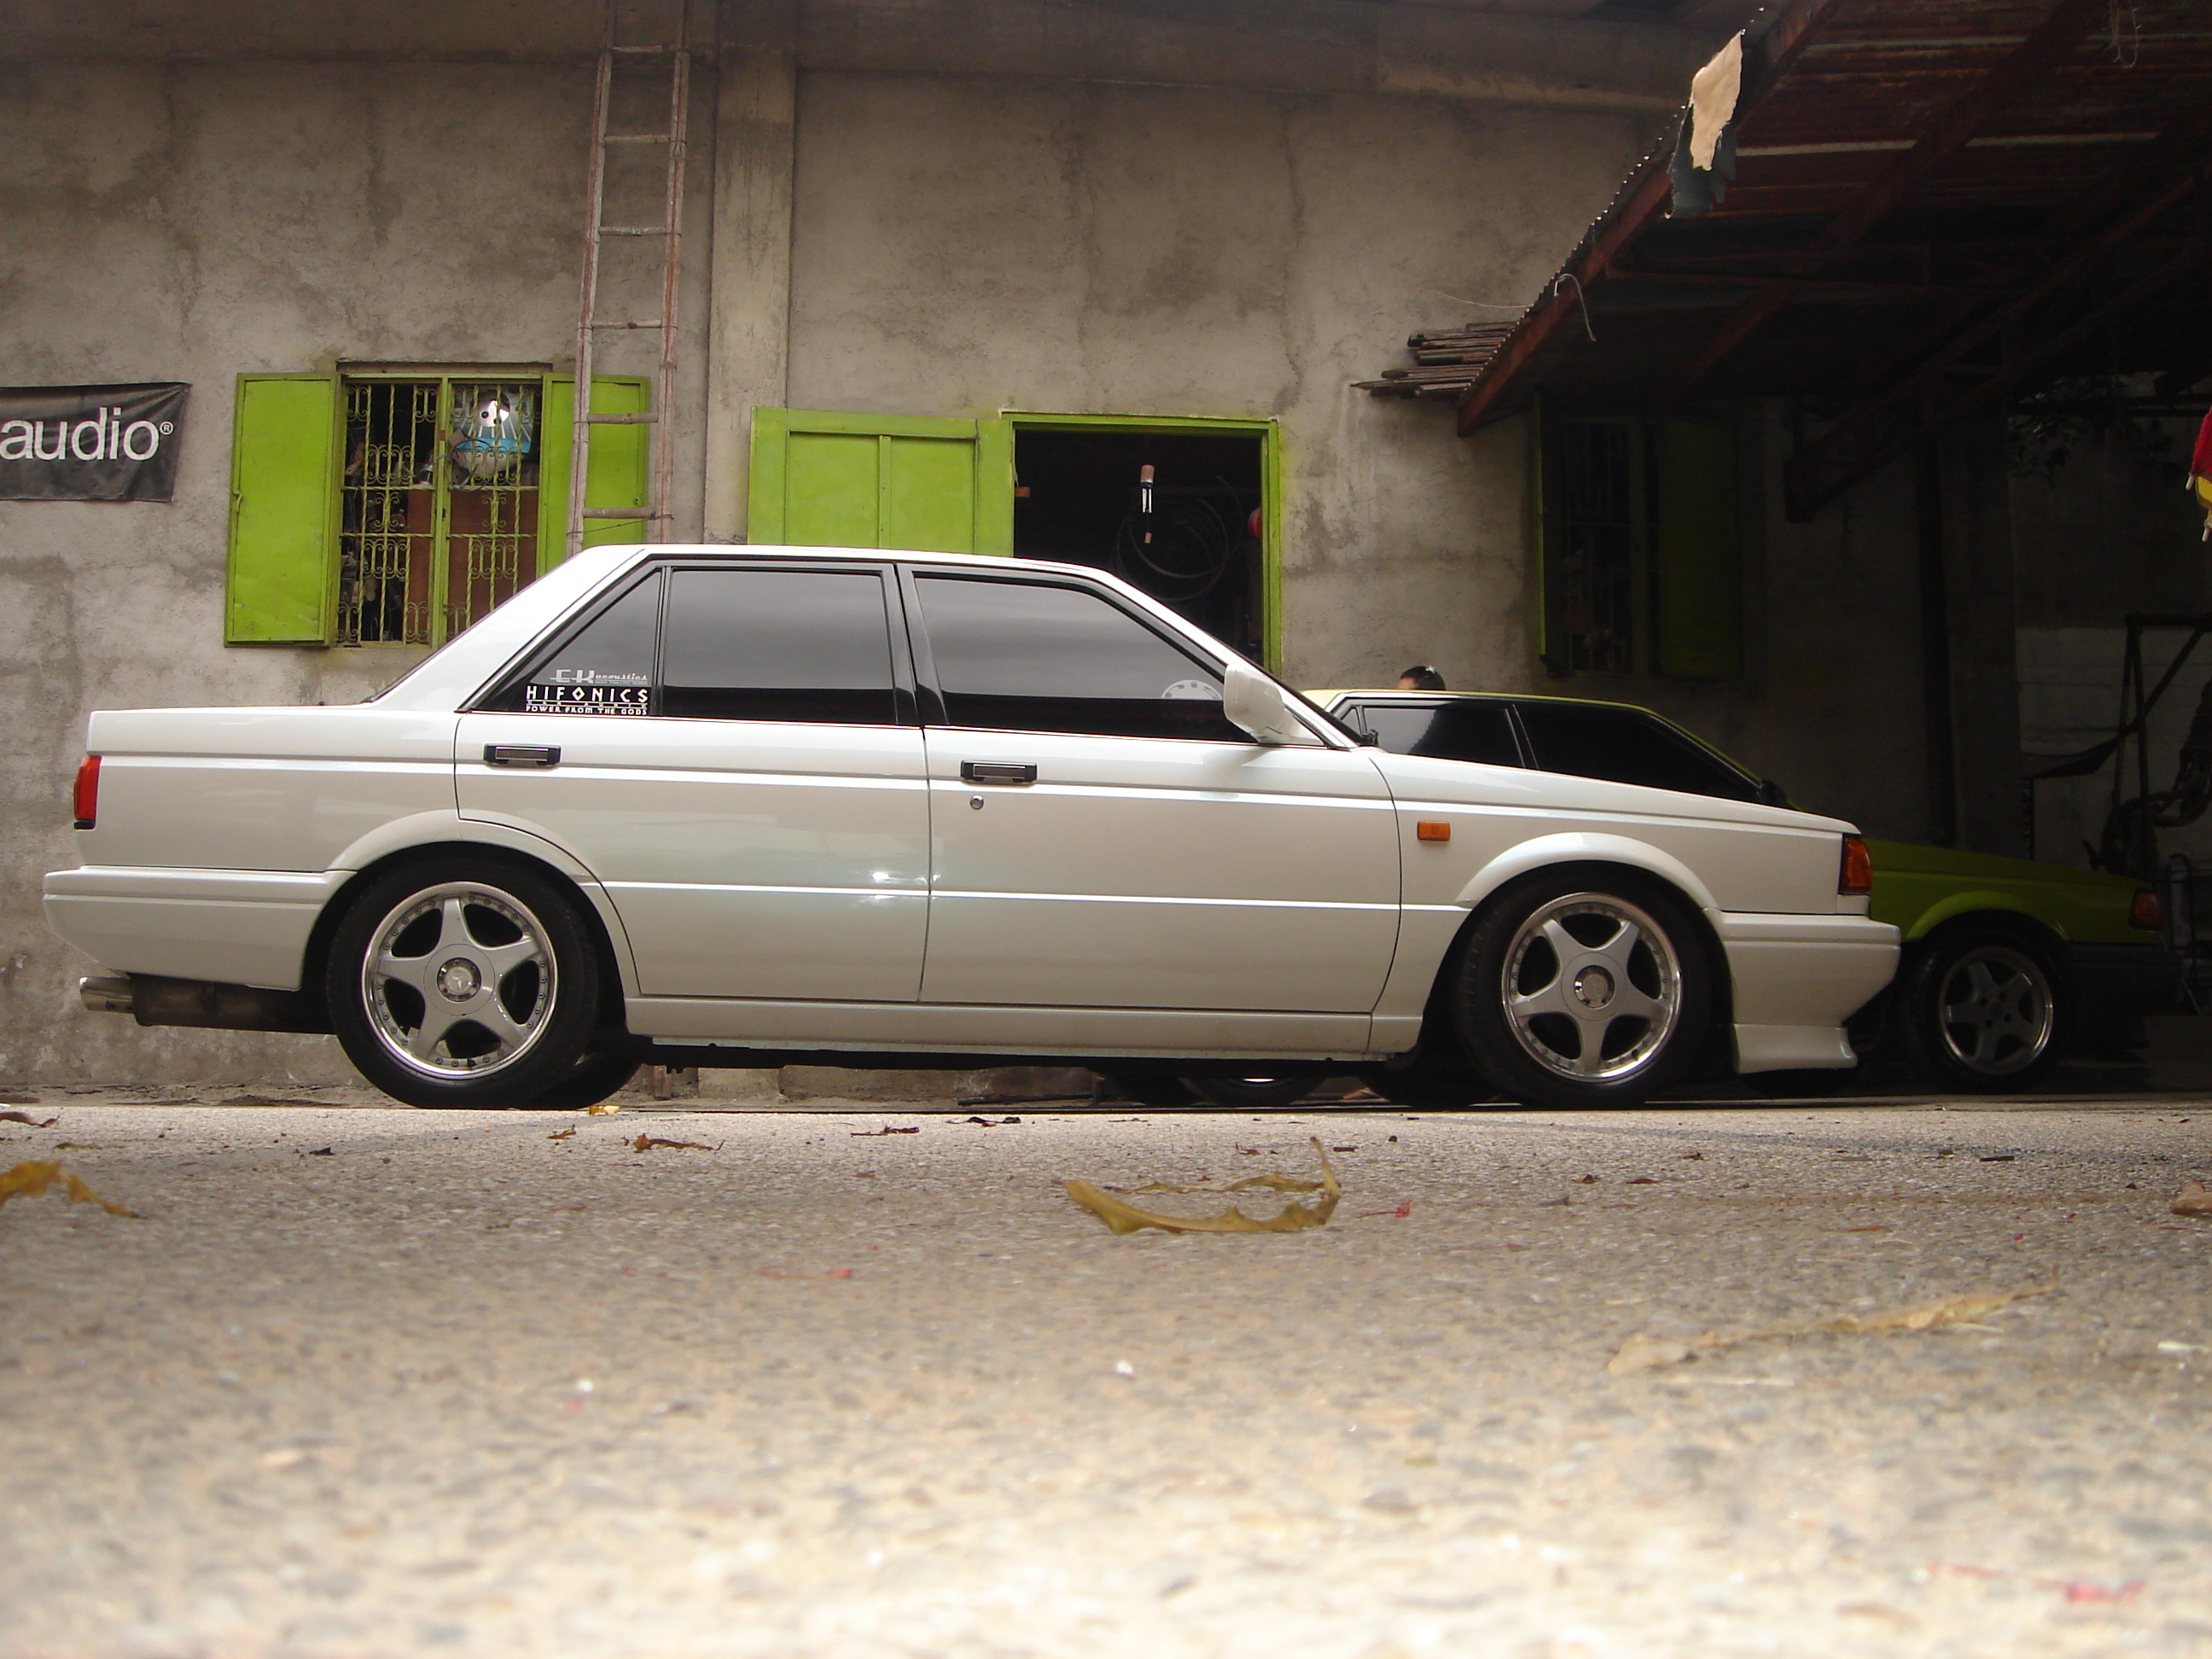 File:1989 B12 Sentra SGX custom.JPG - Wikimedia Commons